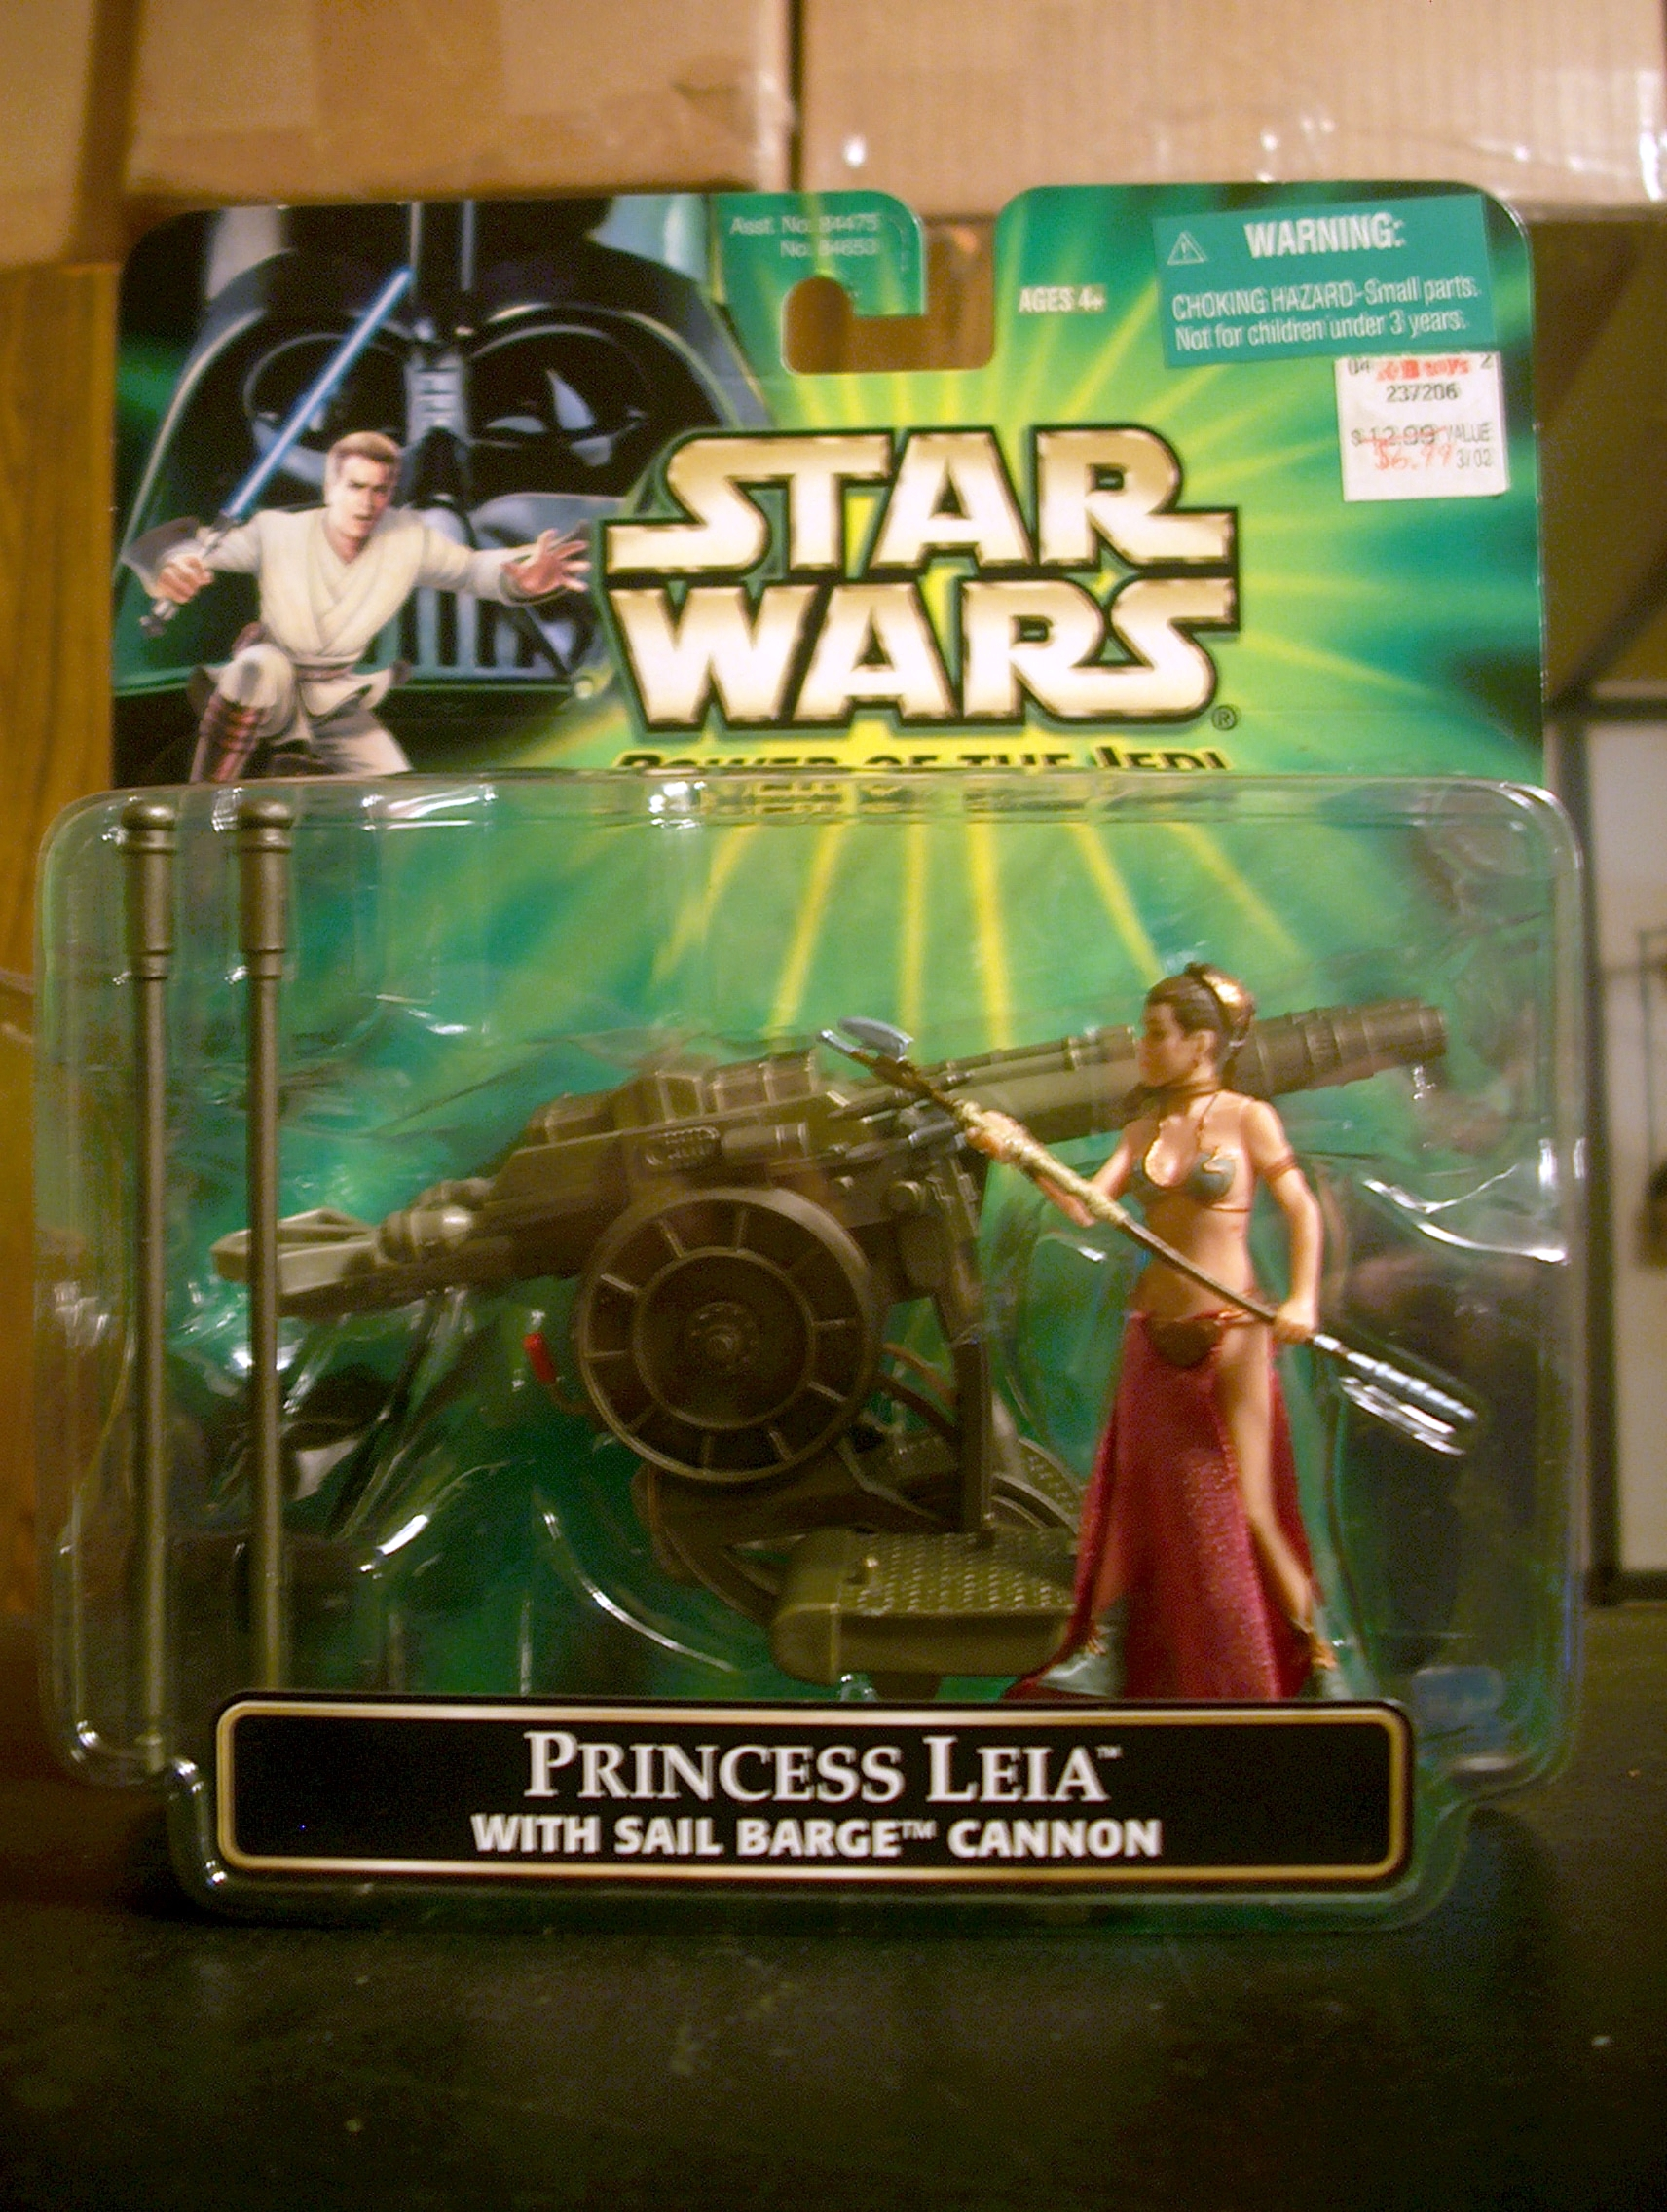 Princess Leia with Sail Barge Cannon